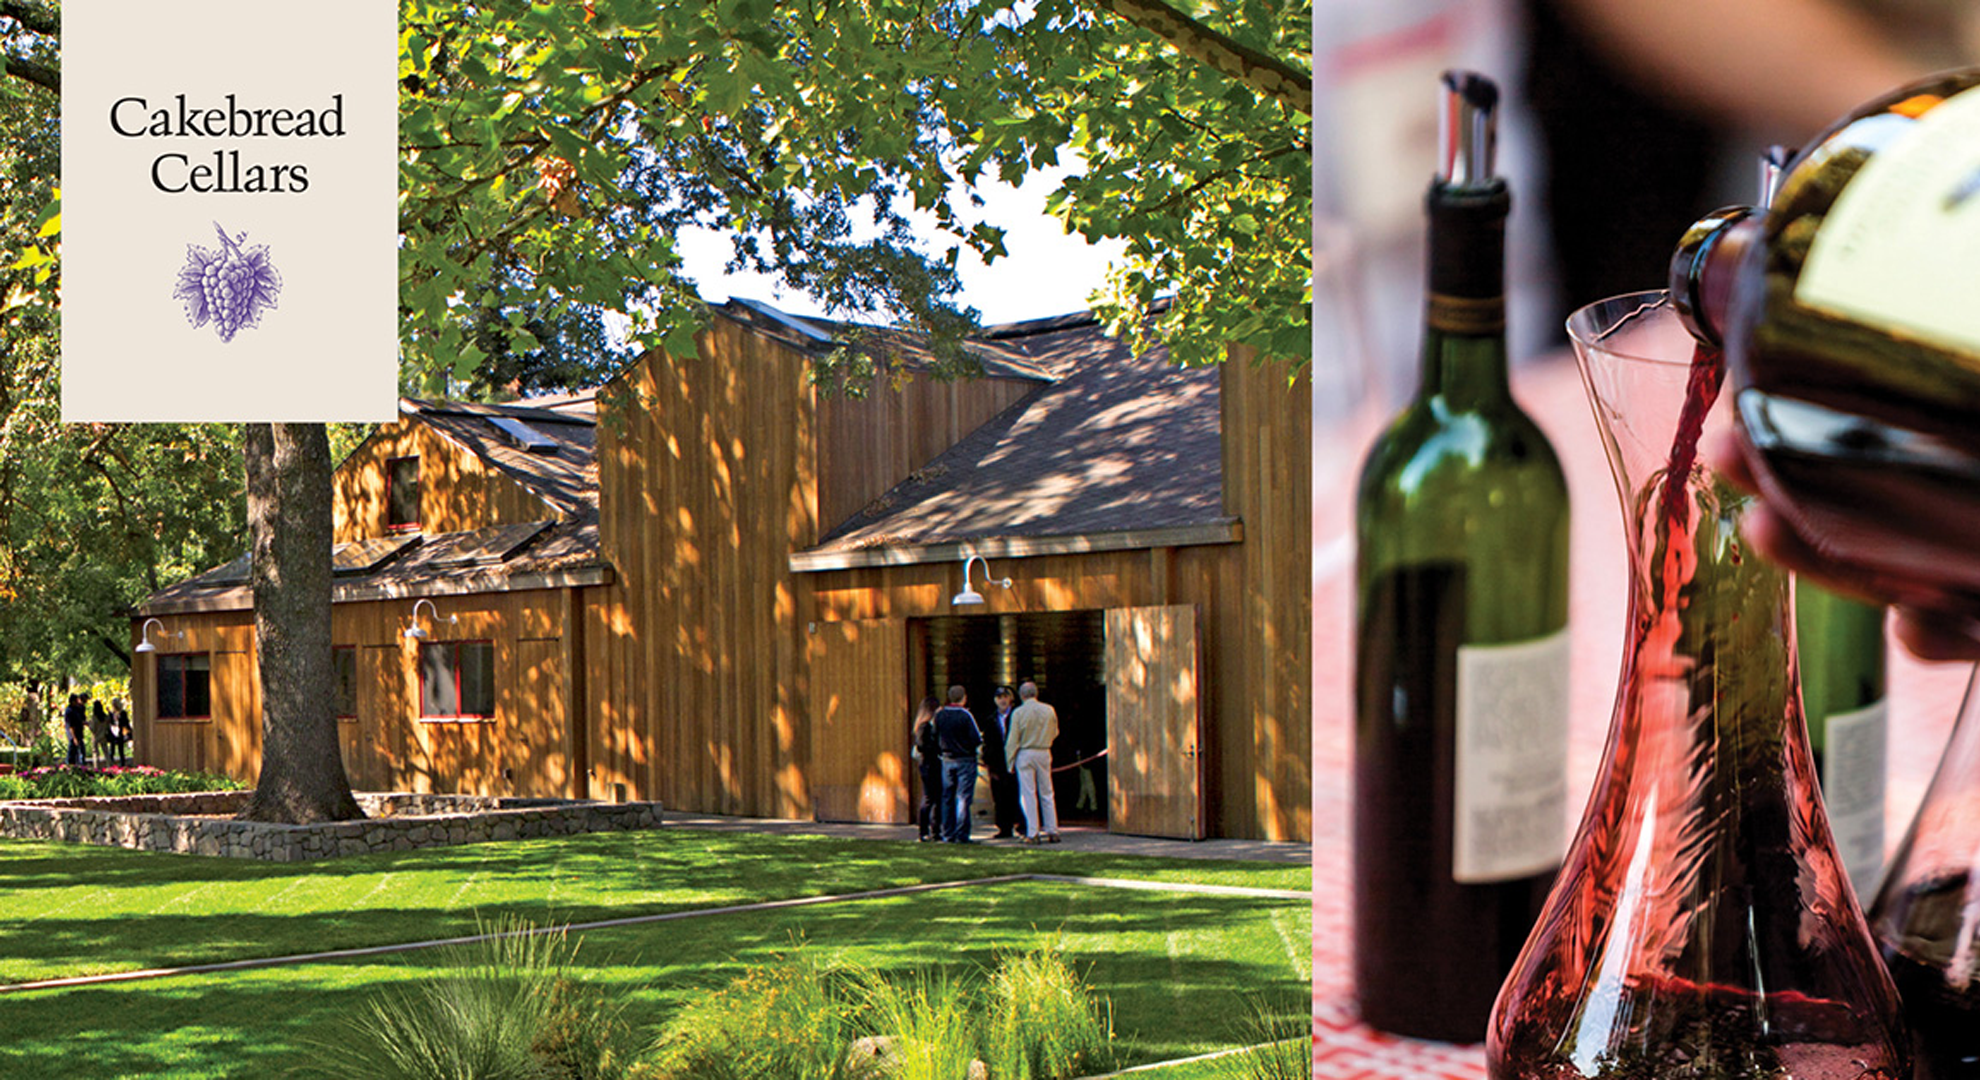 Image of a barn with green grass and people standing outside of it next to an image of red wine being poured into a decanter, featuring the Cakebread Cellars logo.